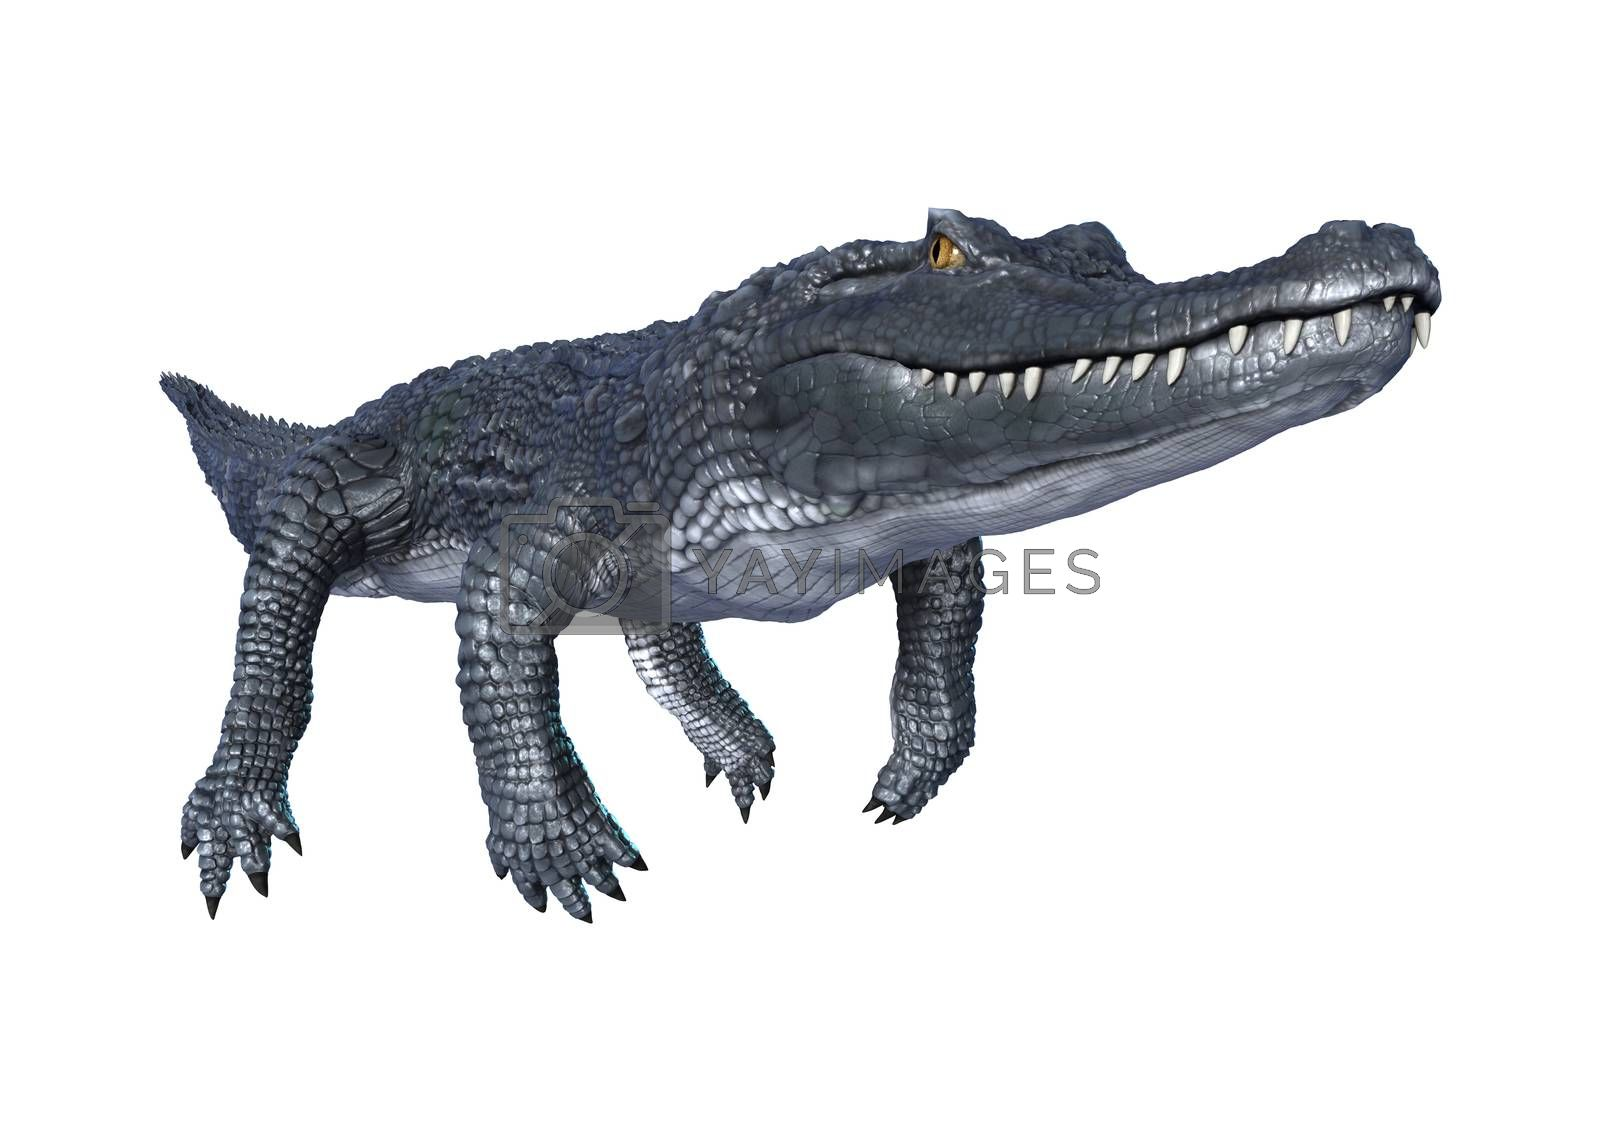 3D digital render of a caiman isolated on white background